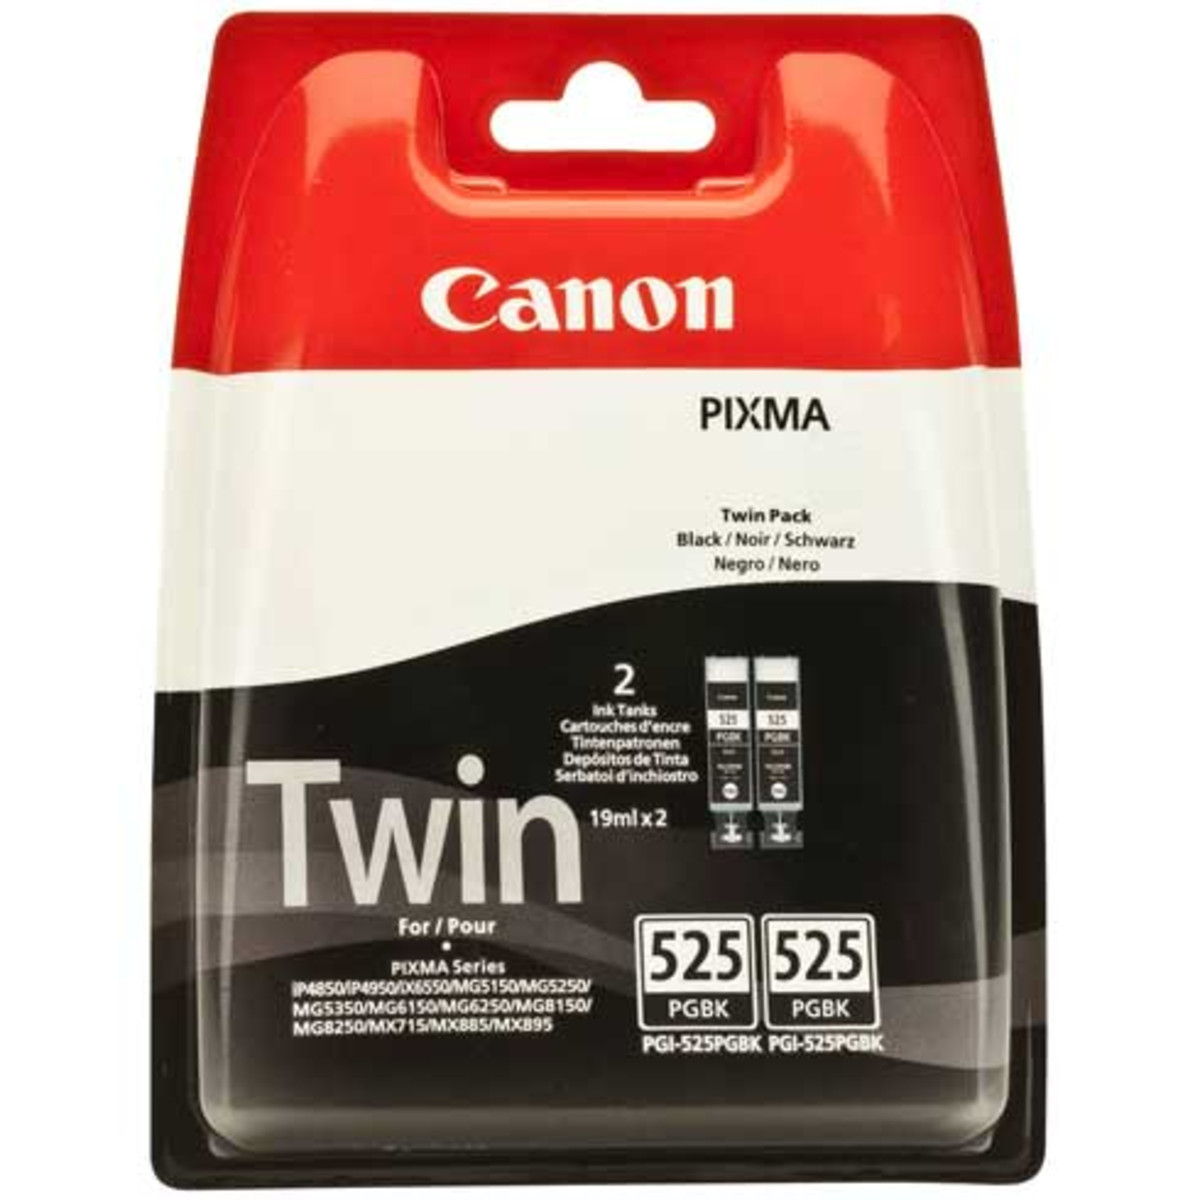 Canon PGI-525BK Black Ink Cartridges - Twin Pack